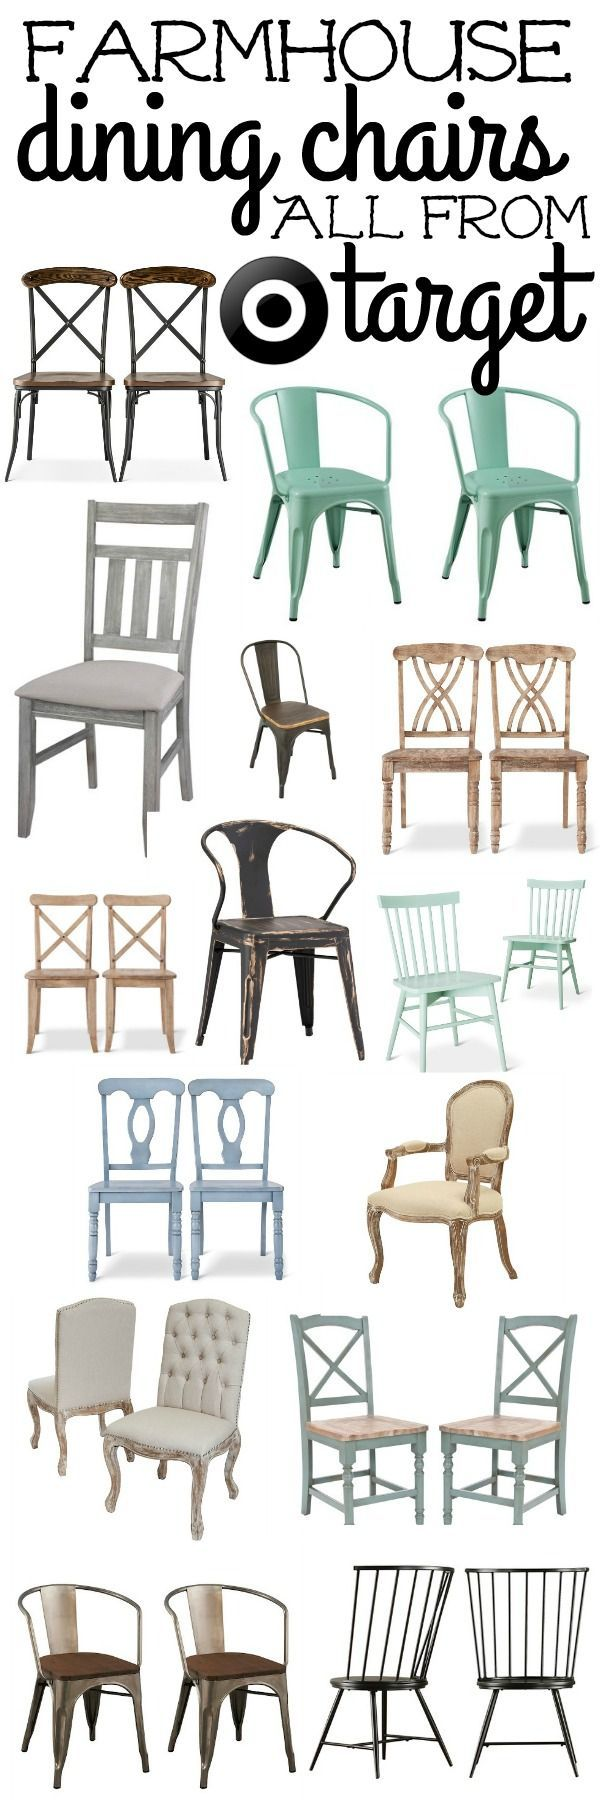 awesome Salle à manger - The best farmhouse dining room chairs. Great chairs that will add that rustic fa...